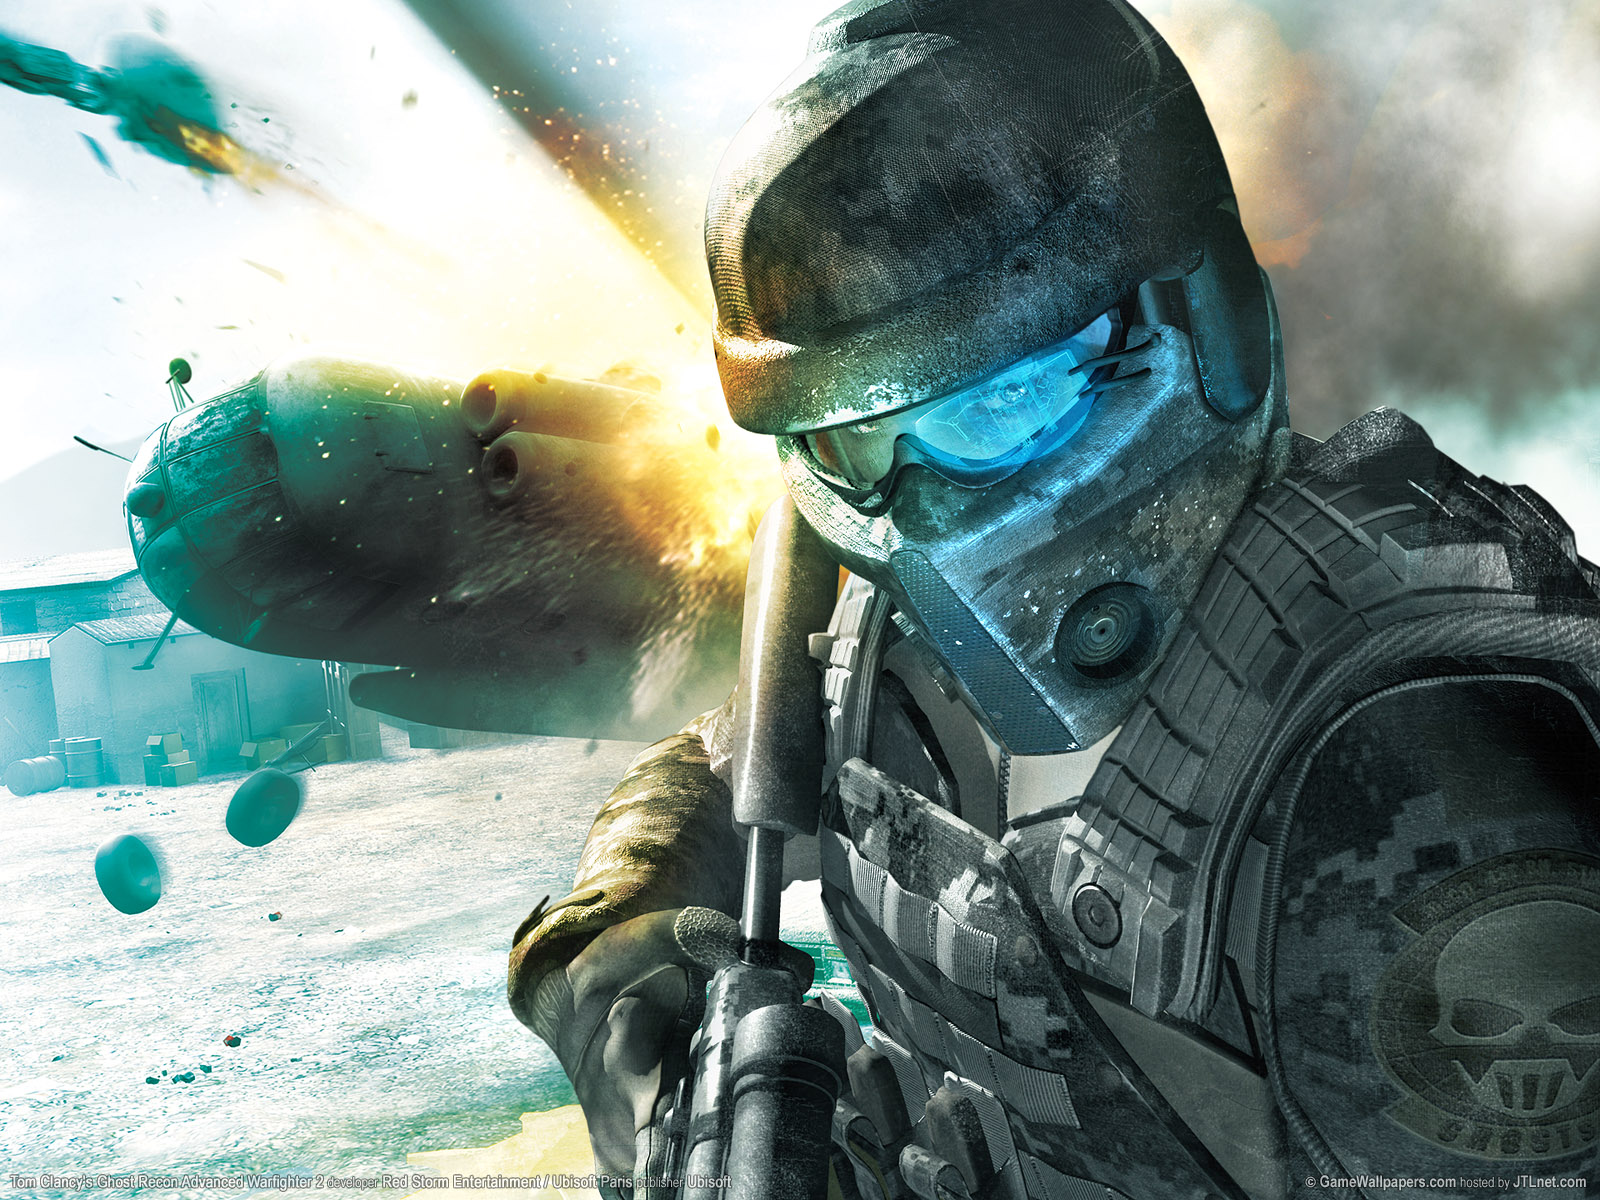 http://1.bp.blogspot.com/_dpYoSGNB9lc/S8NrraAW8GI/AAAAAAAAAGM/o6vS9XiLqOk/s1600/wallpaper_tom_clancys_ghost_recon_advanced_warfighter_2_01_1600.jpg